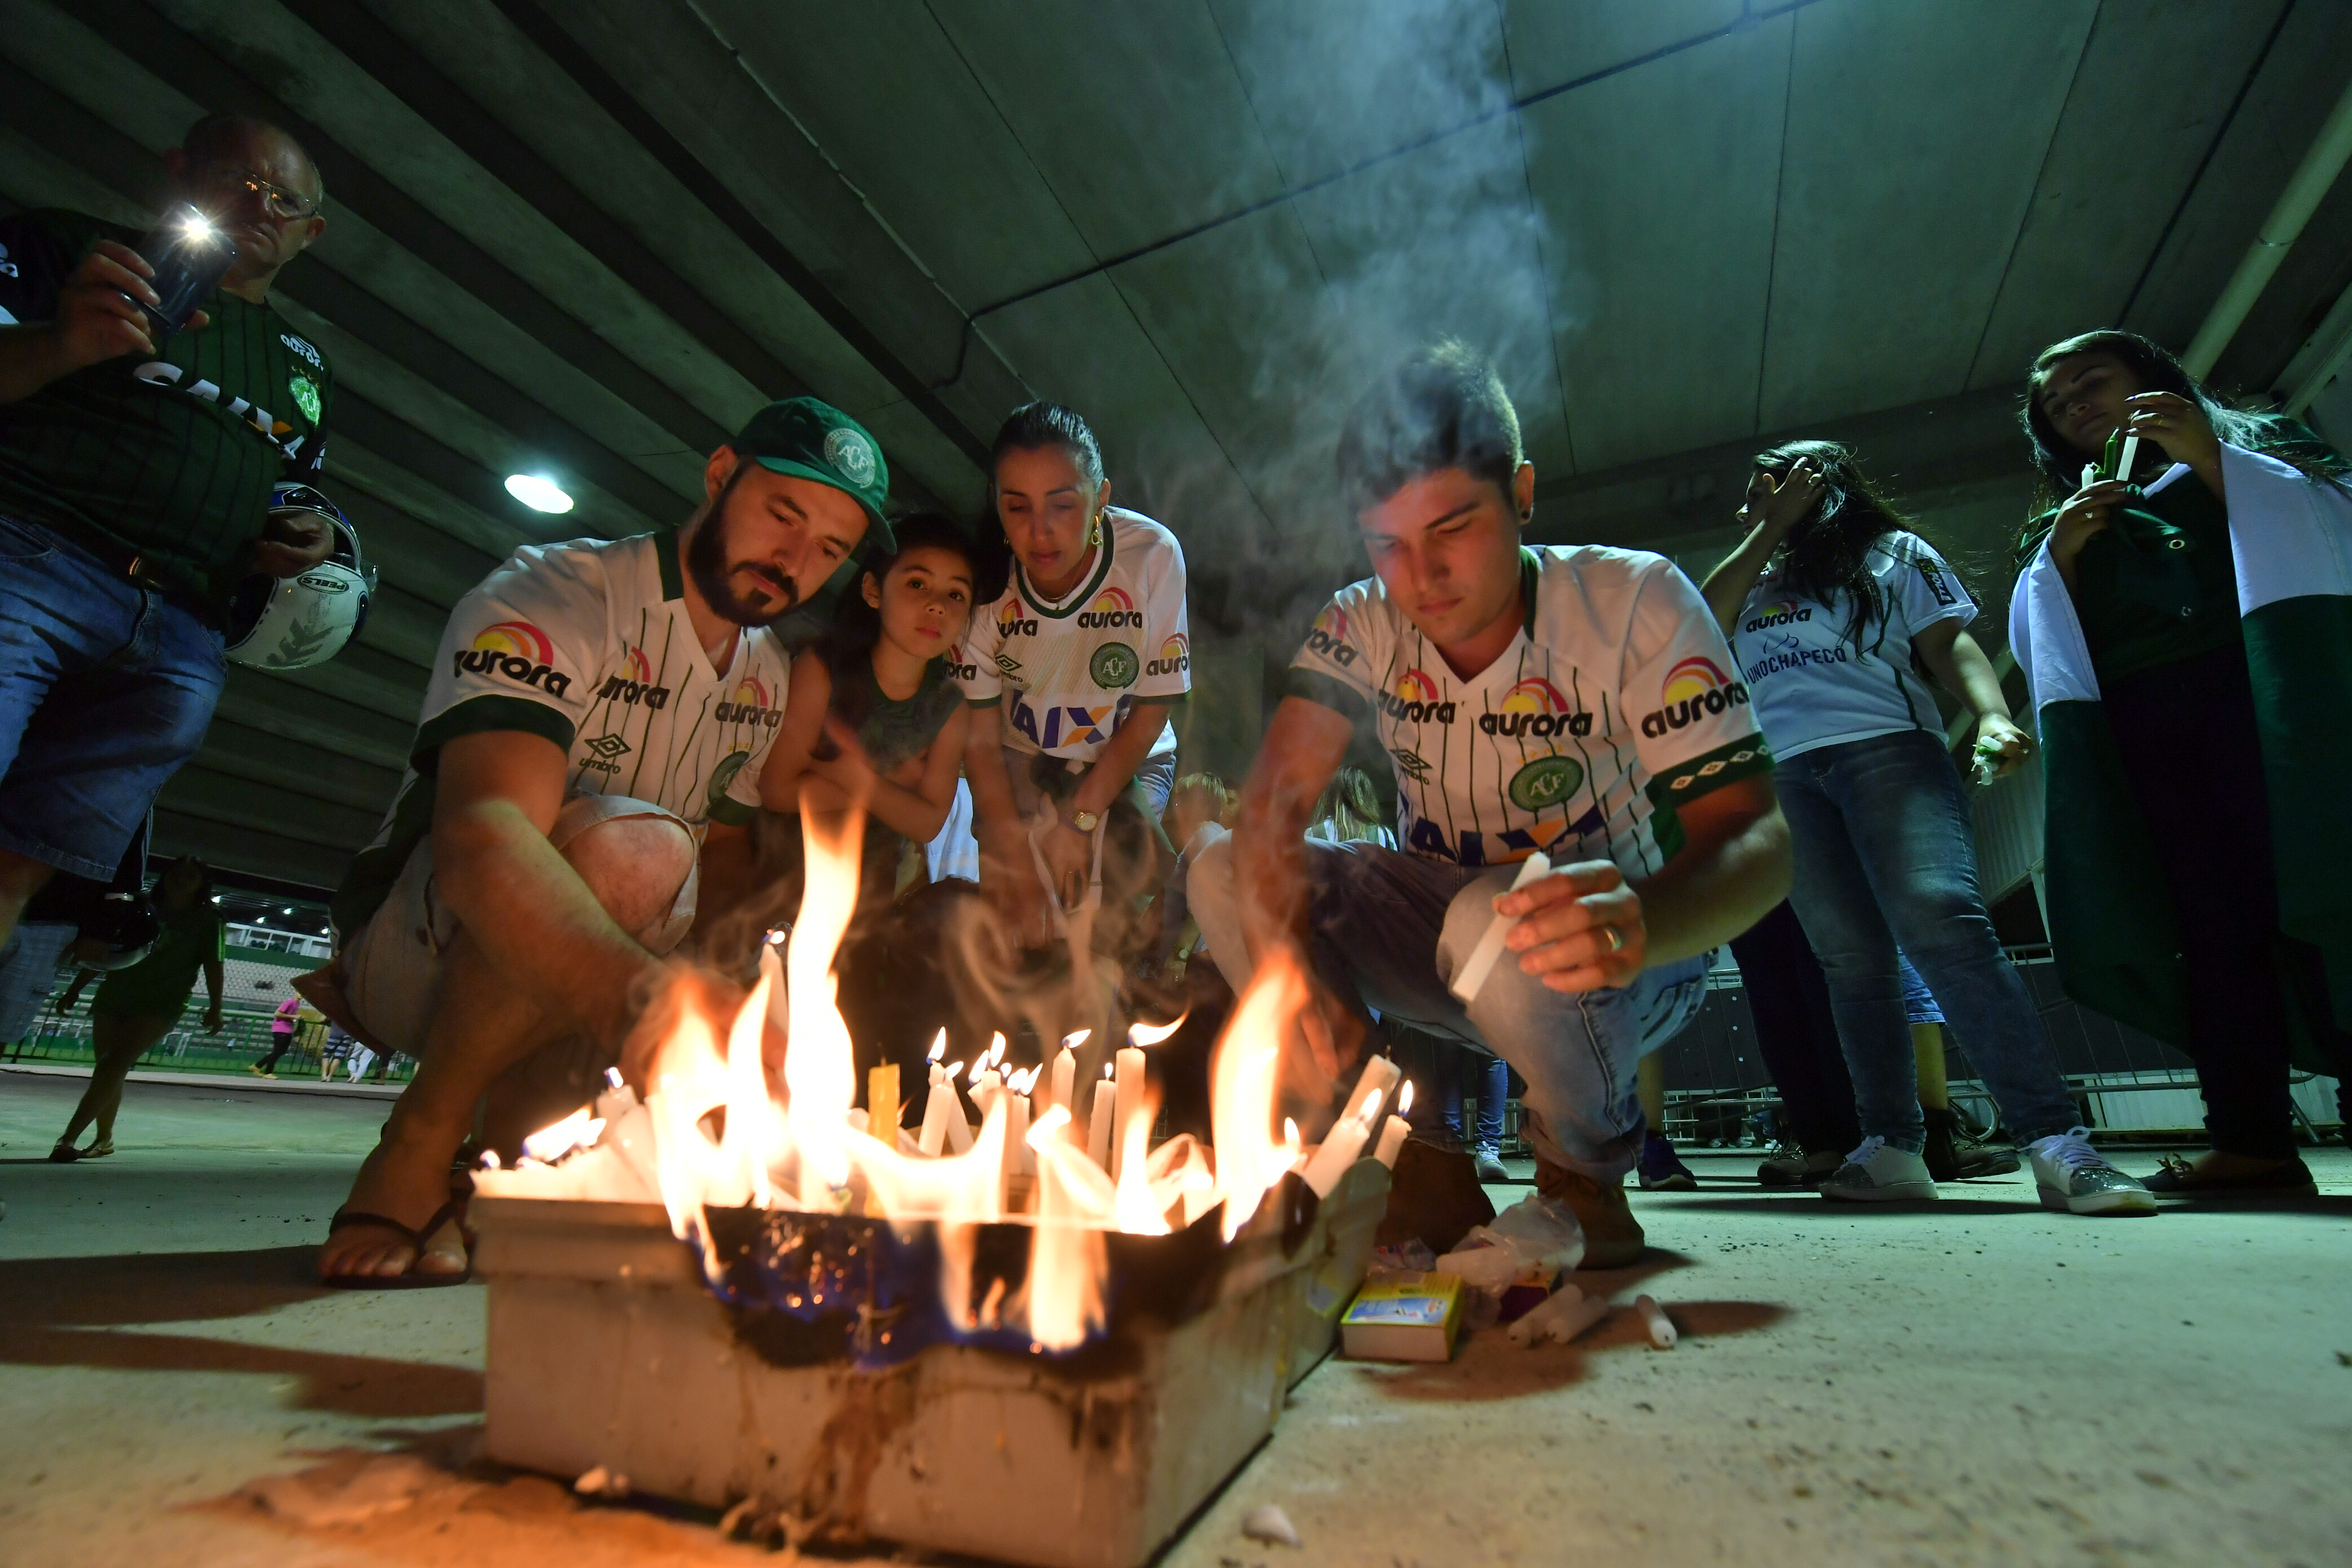 Fans light candles in tribute to the players of Brazilian team Chapecoense Real killed in a plane crash in the Colombian mountains, at their football stadium in Chapeco, Santa Catarina, Brazil on November 29, 2016.